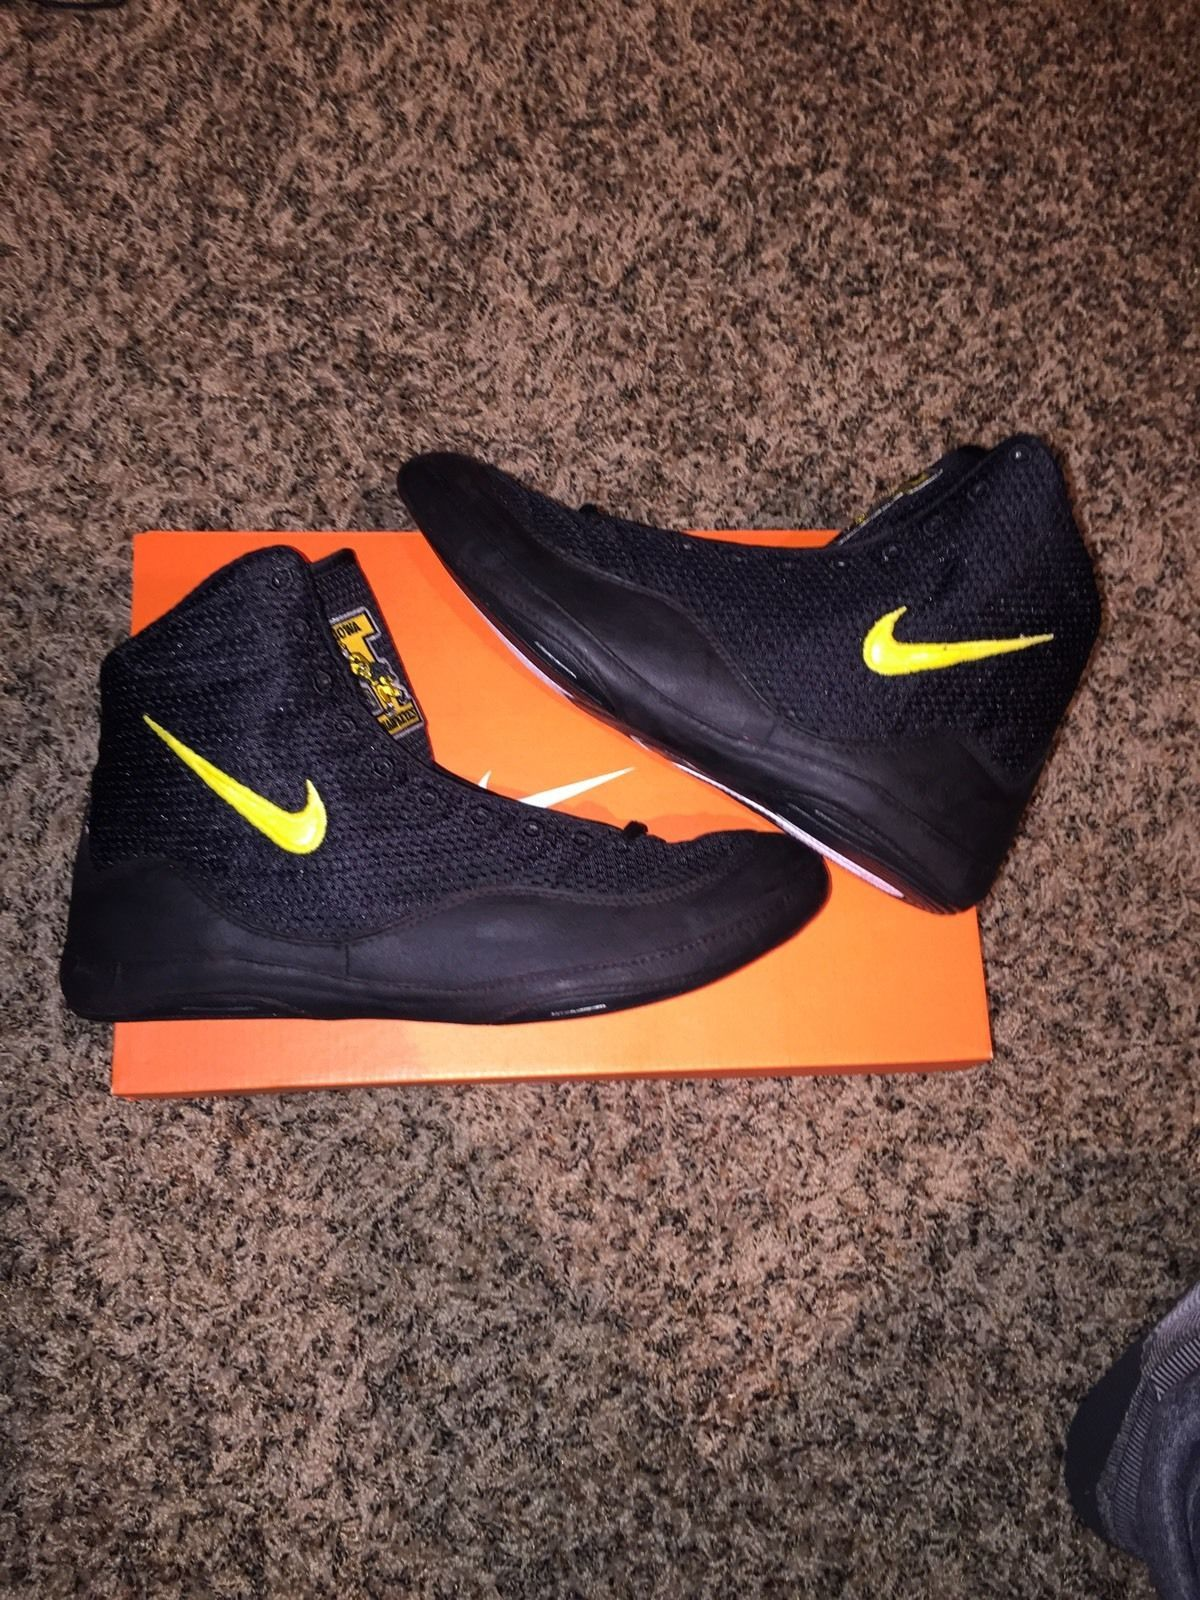 Details about Nike Inflict 3 Wrestling Shoes